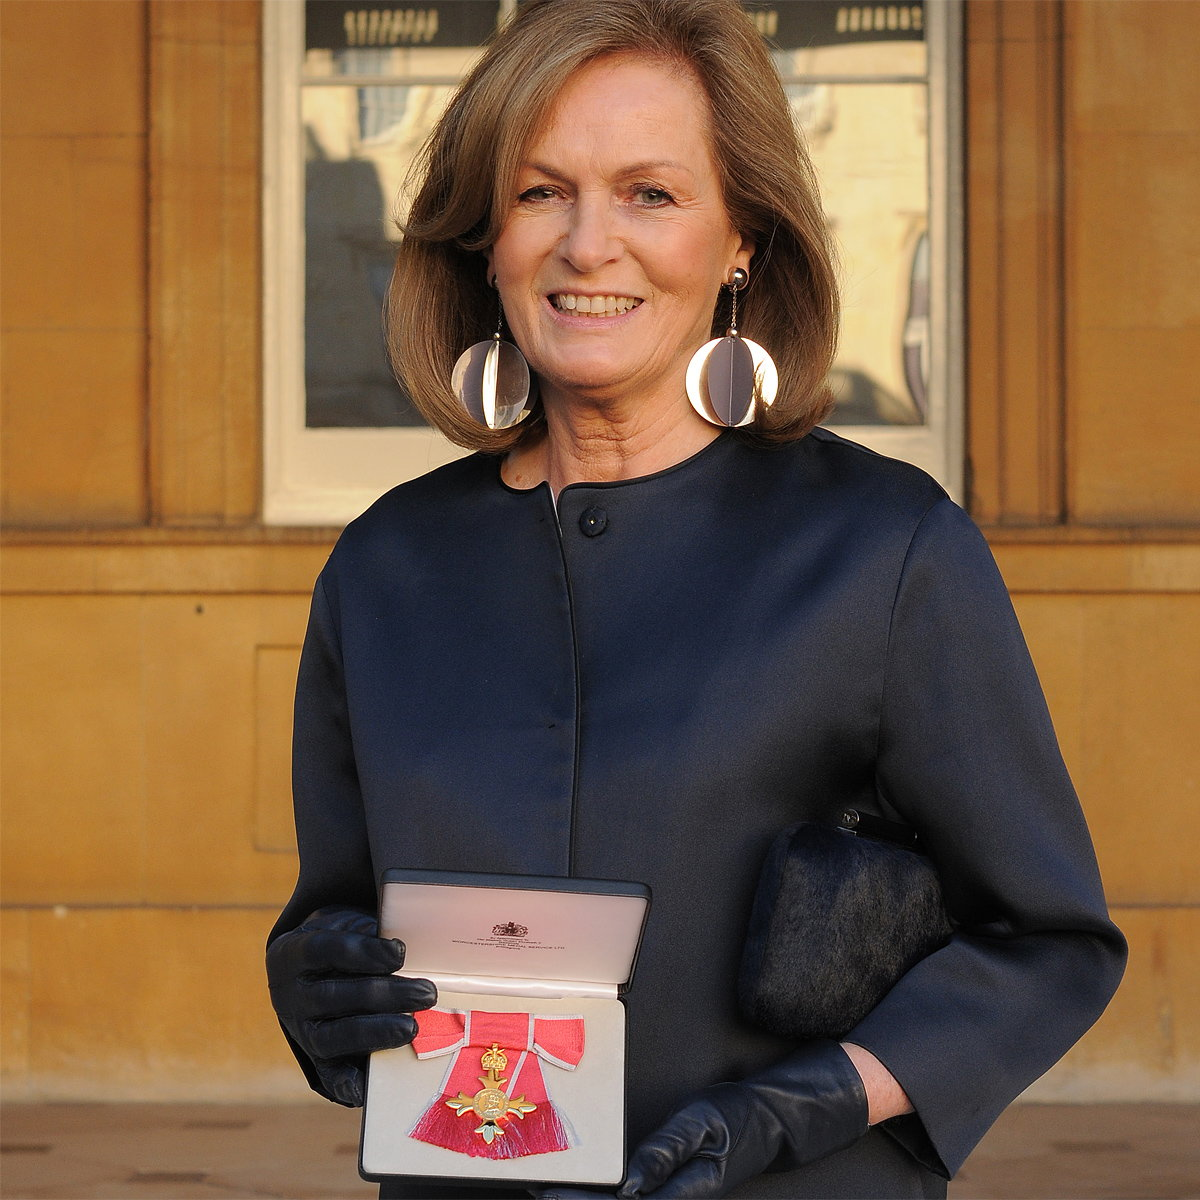 Diana Yakeley Receives OBE From Prince William for Services to the Interior Design Profession